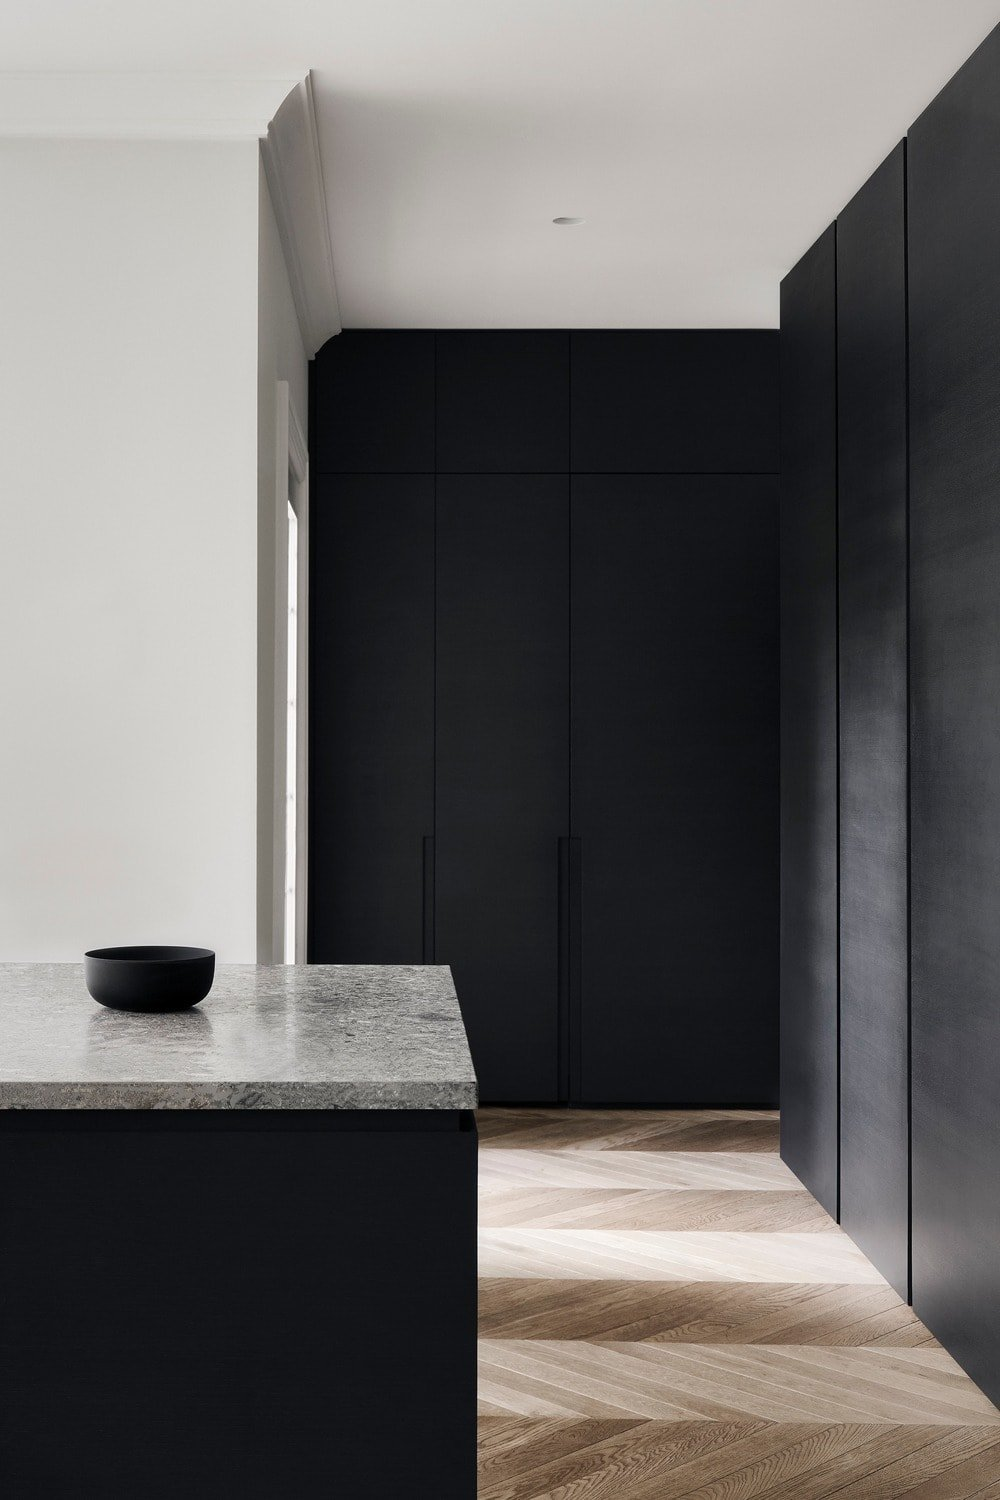 The black kitchen island matches well with the rest of the kitchen's cabinetry paired with black appliances.